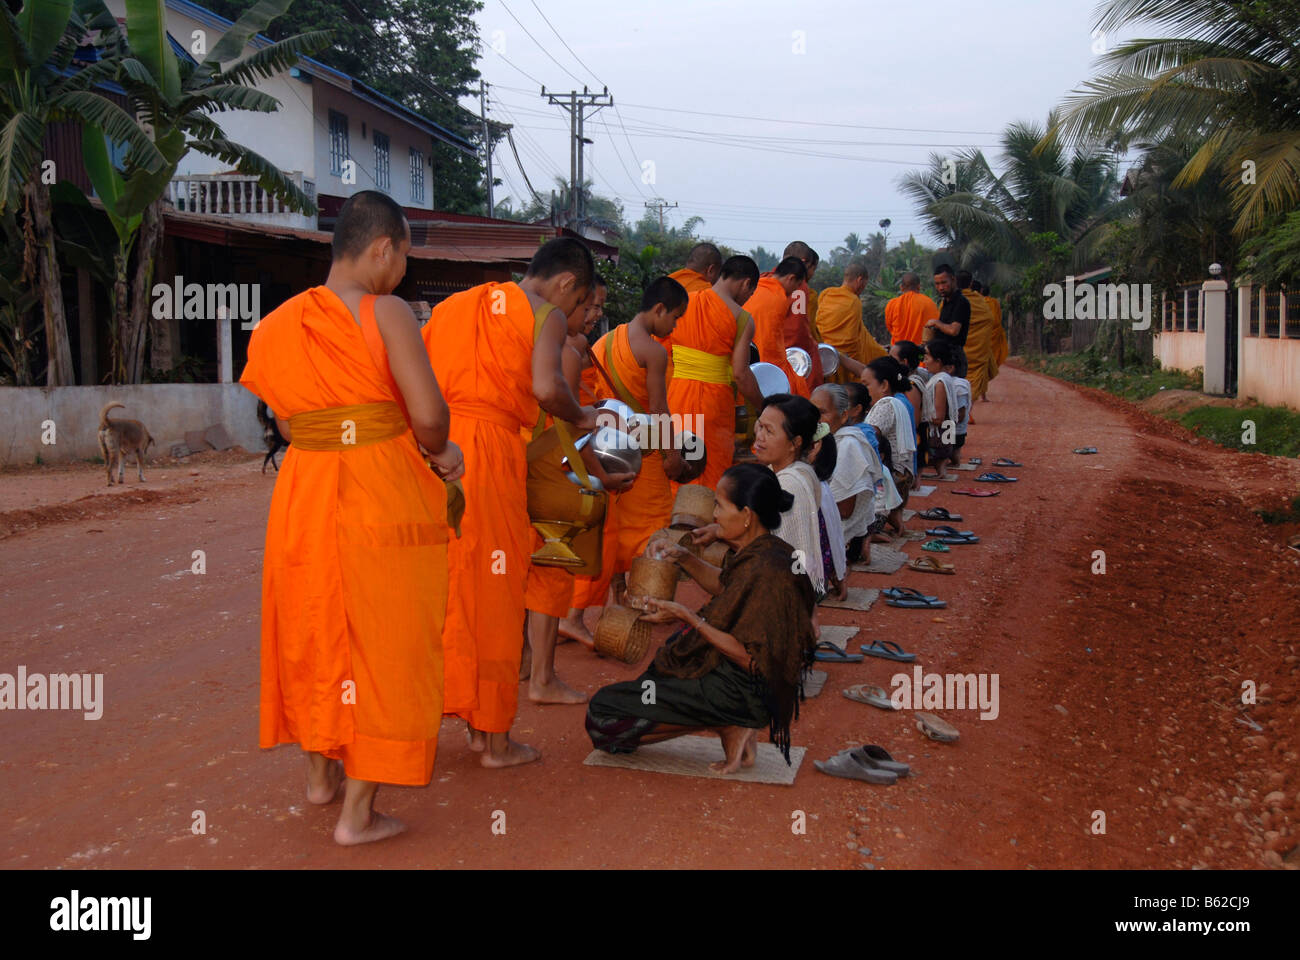 Buddhist monks getting rice at the morning alms-dealing, Wat Nakhoun Noi, Vientiane Province, Laos, Southeast Asia - Stock Image